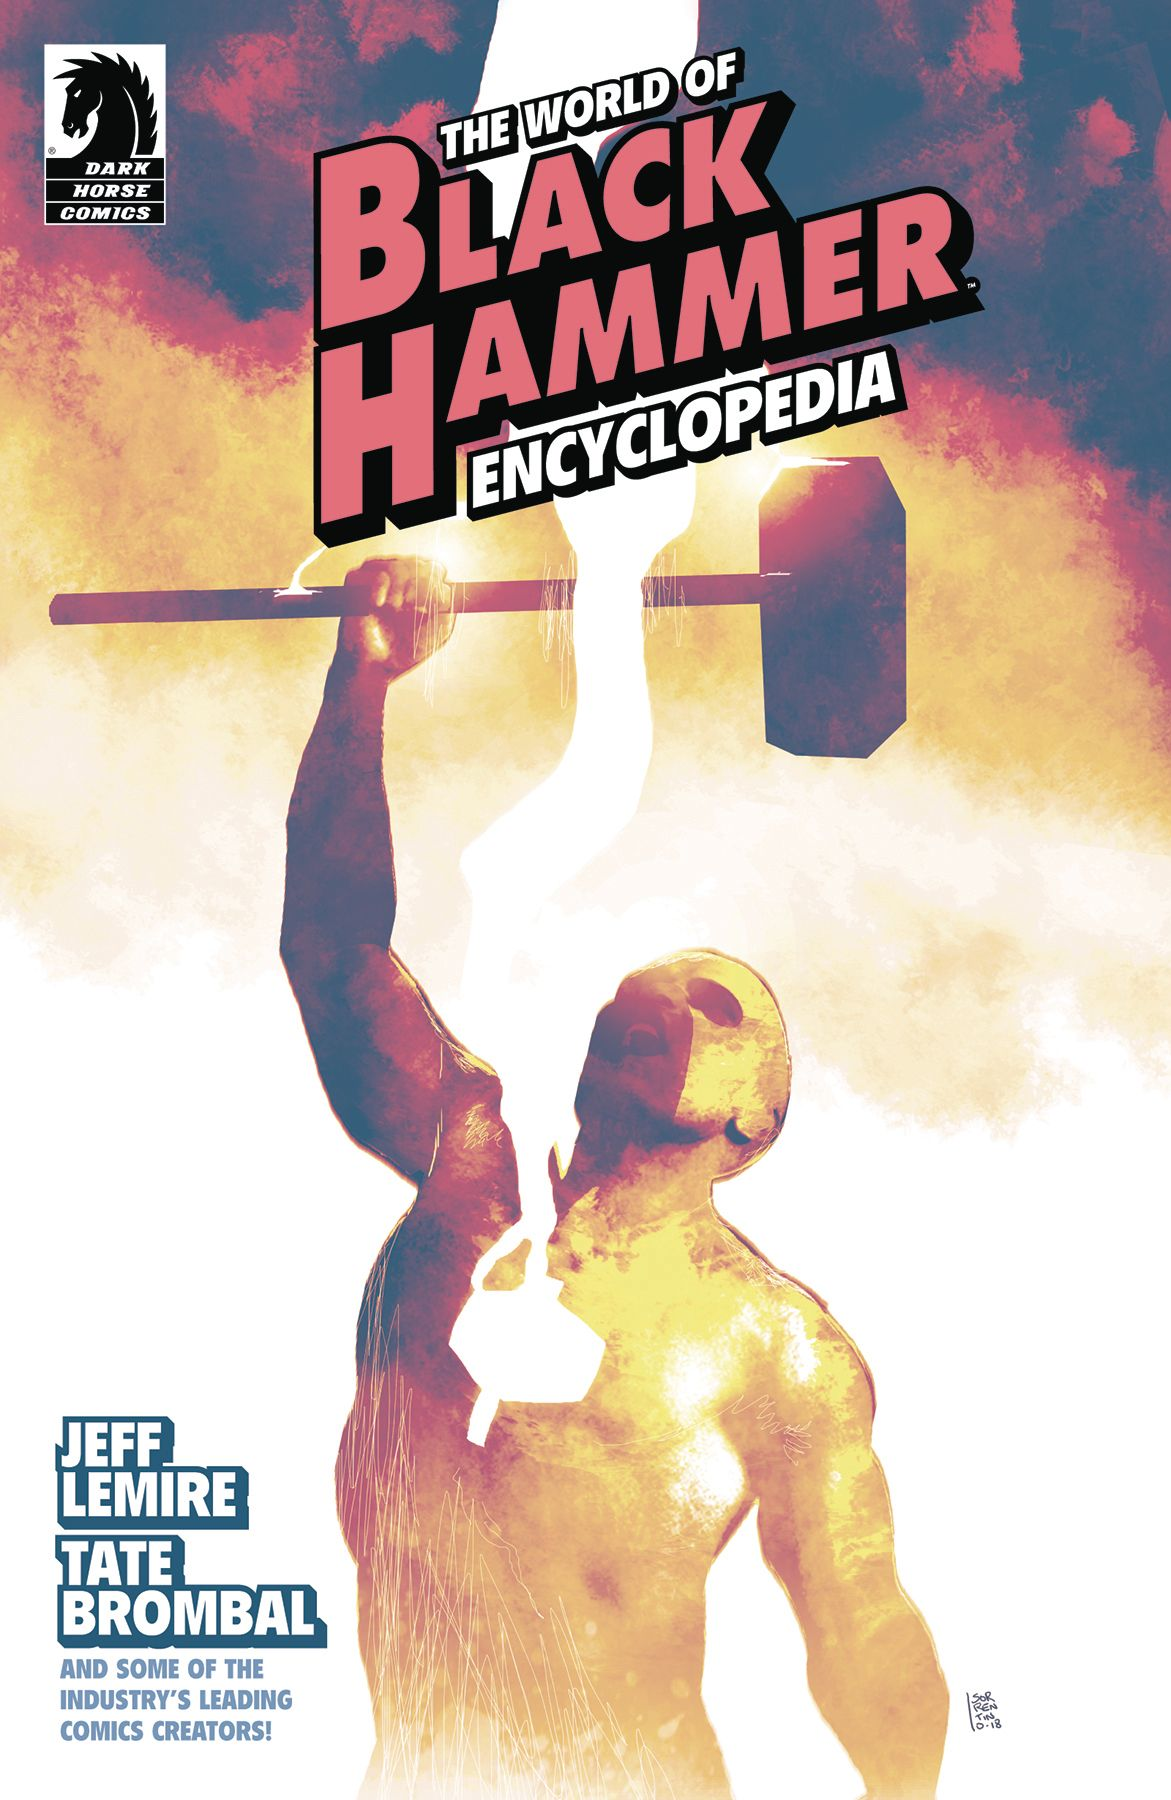 World of Black Hammer Encyclopedia